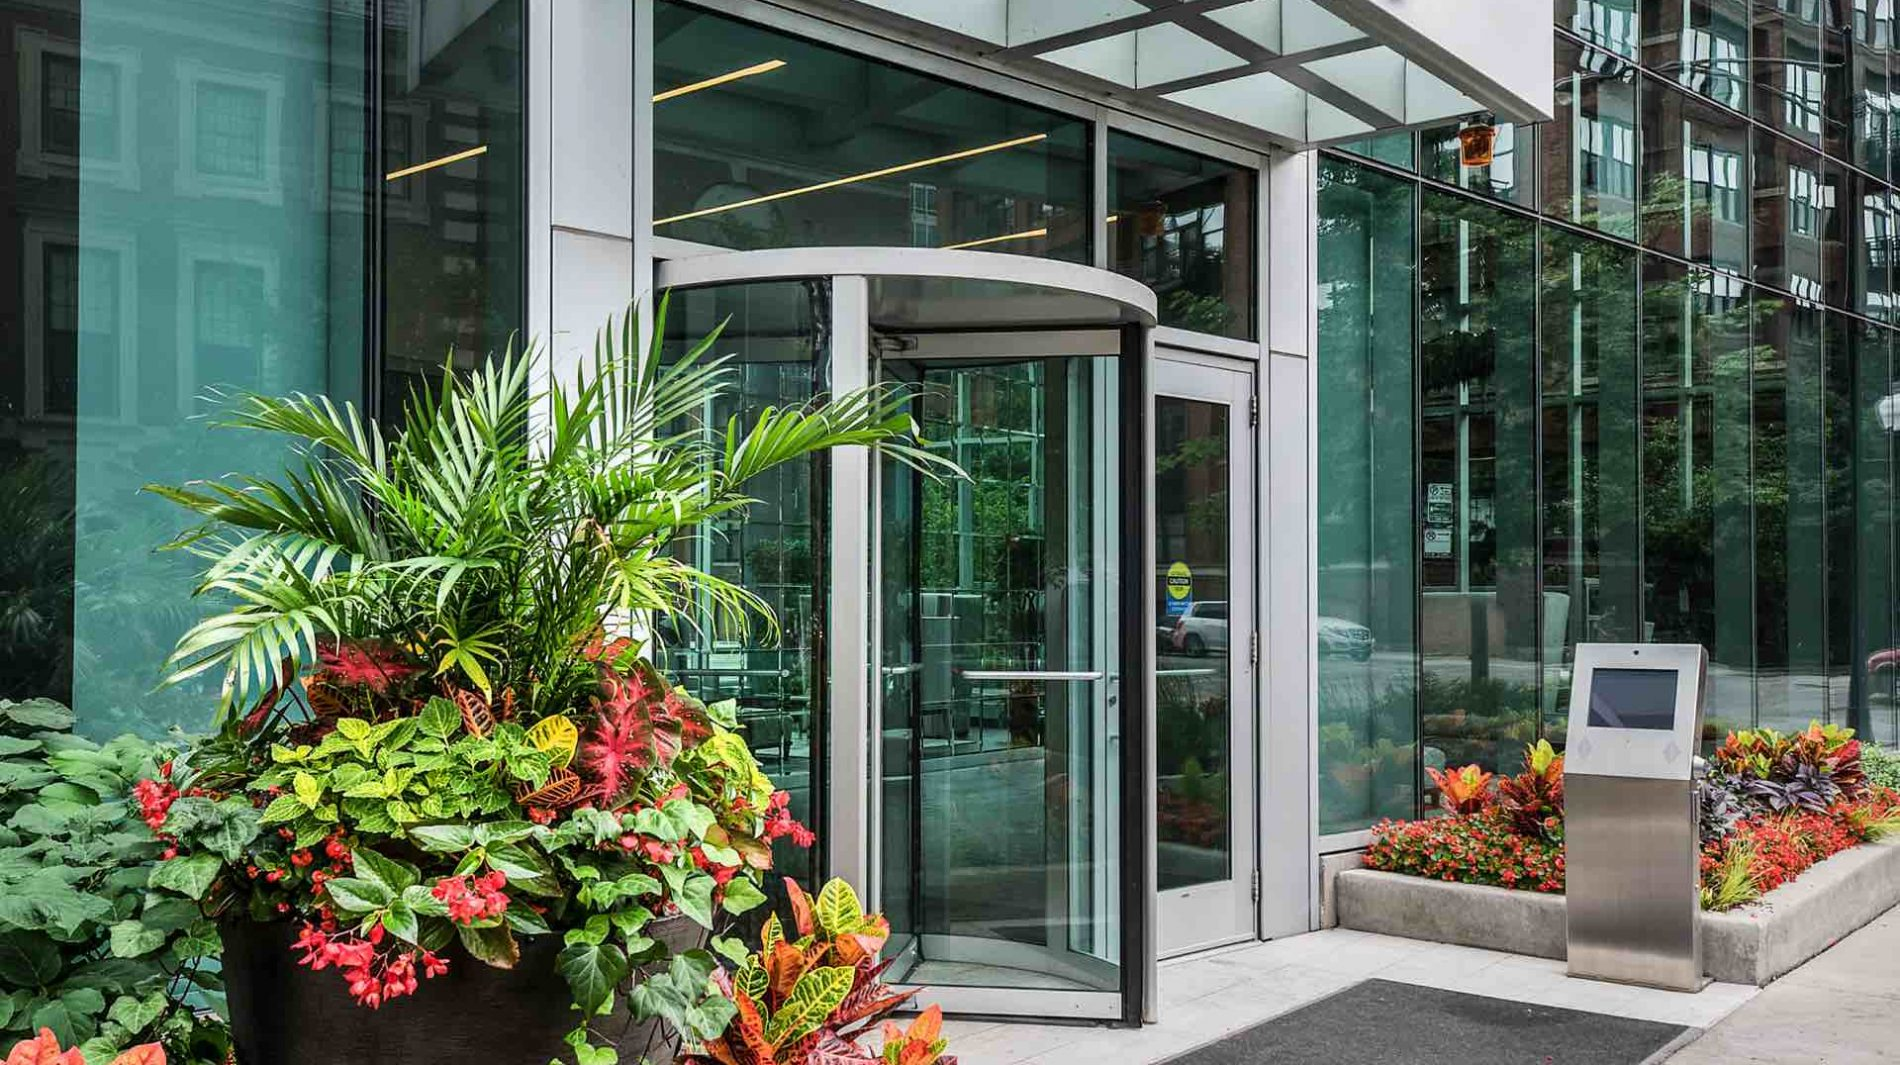 Welcome to Parc Huron, where our philosophy is simple – be well in your environment.